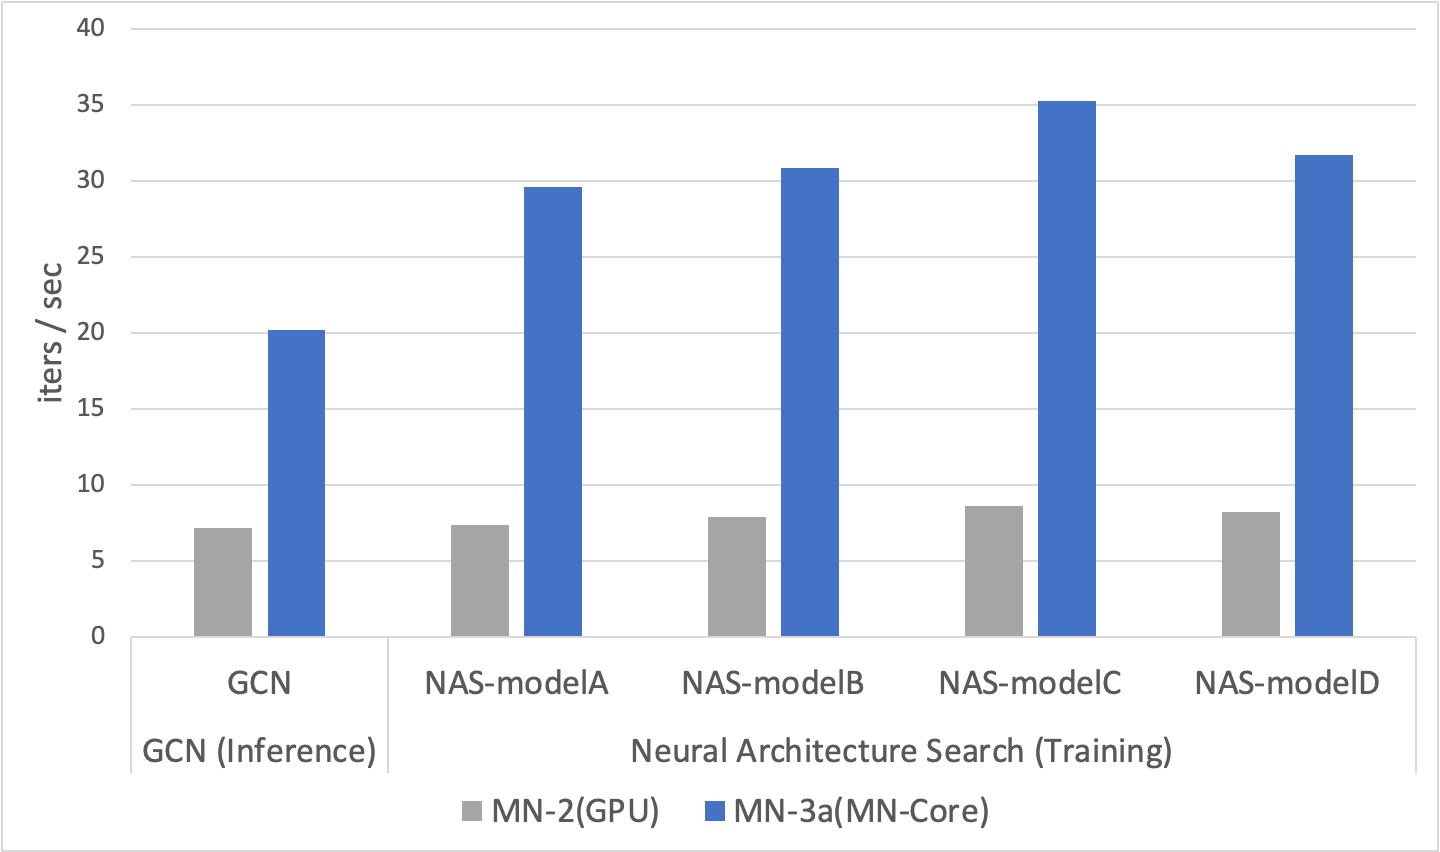 Performance Evaluation (GCN + NAS, MN2 vs MN-3a)